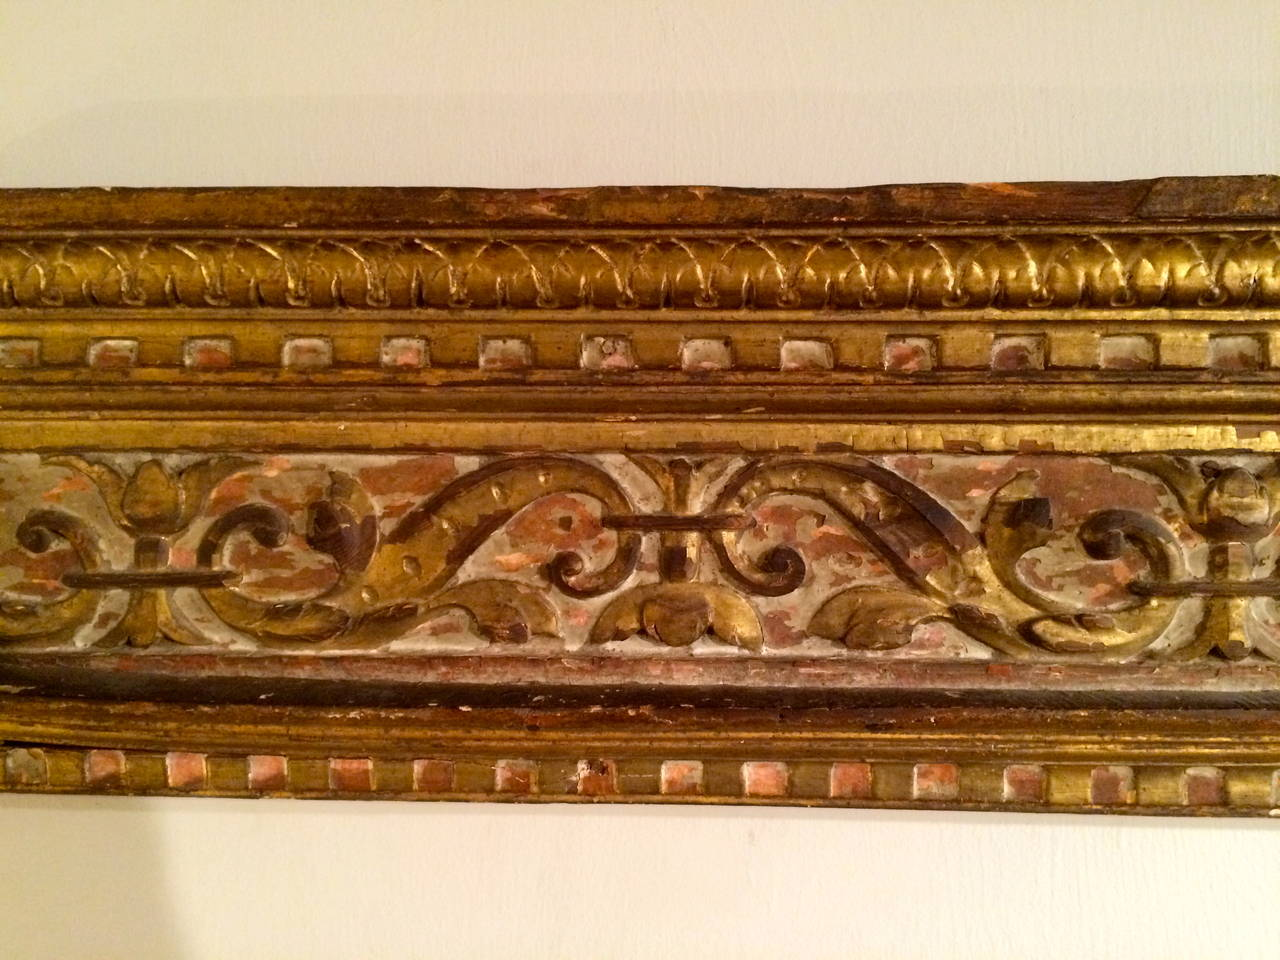 Baroque 18th Century Italian Giltwood Architectural Carving For Sale